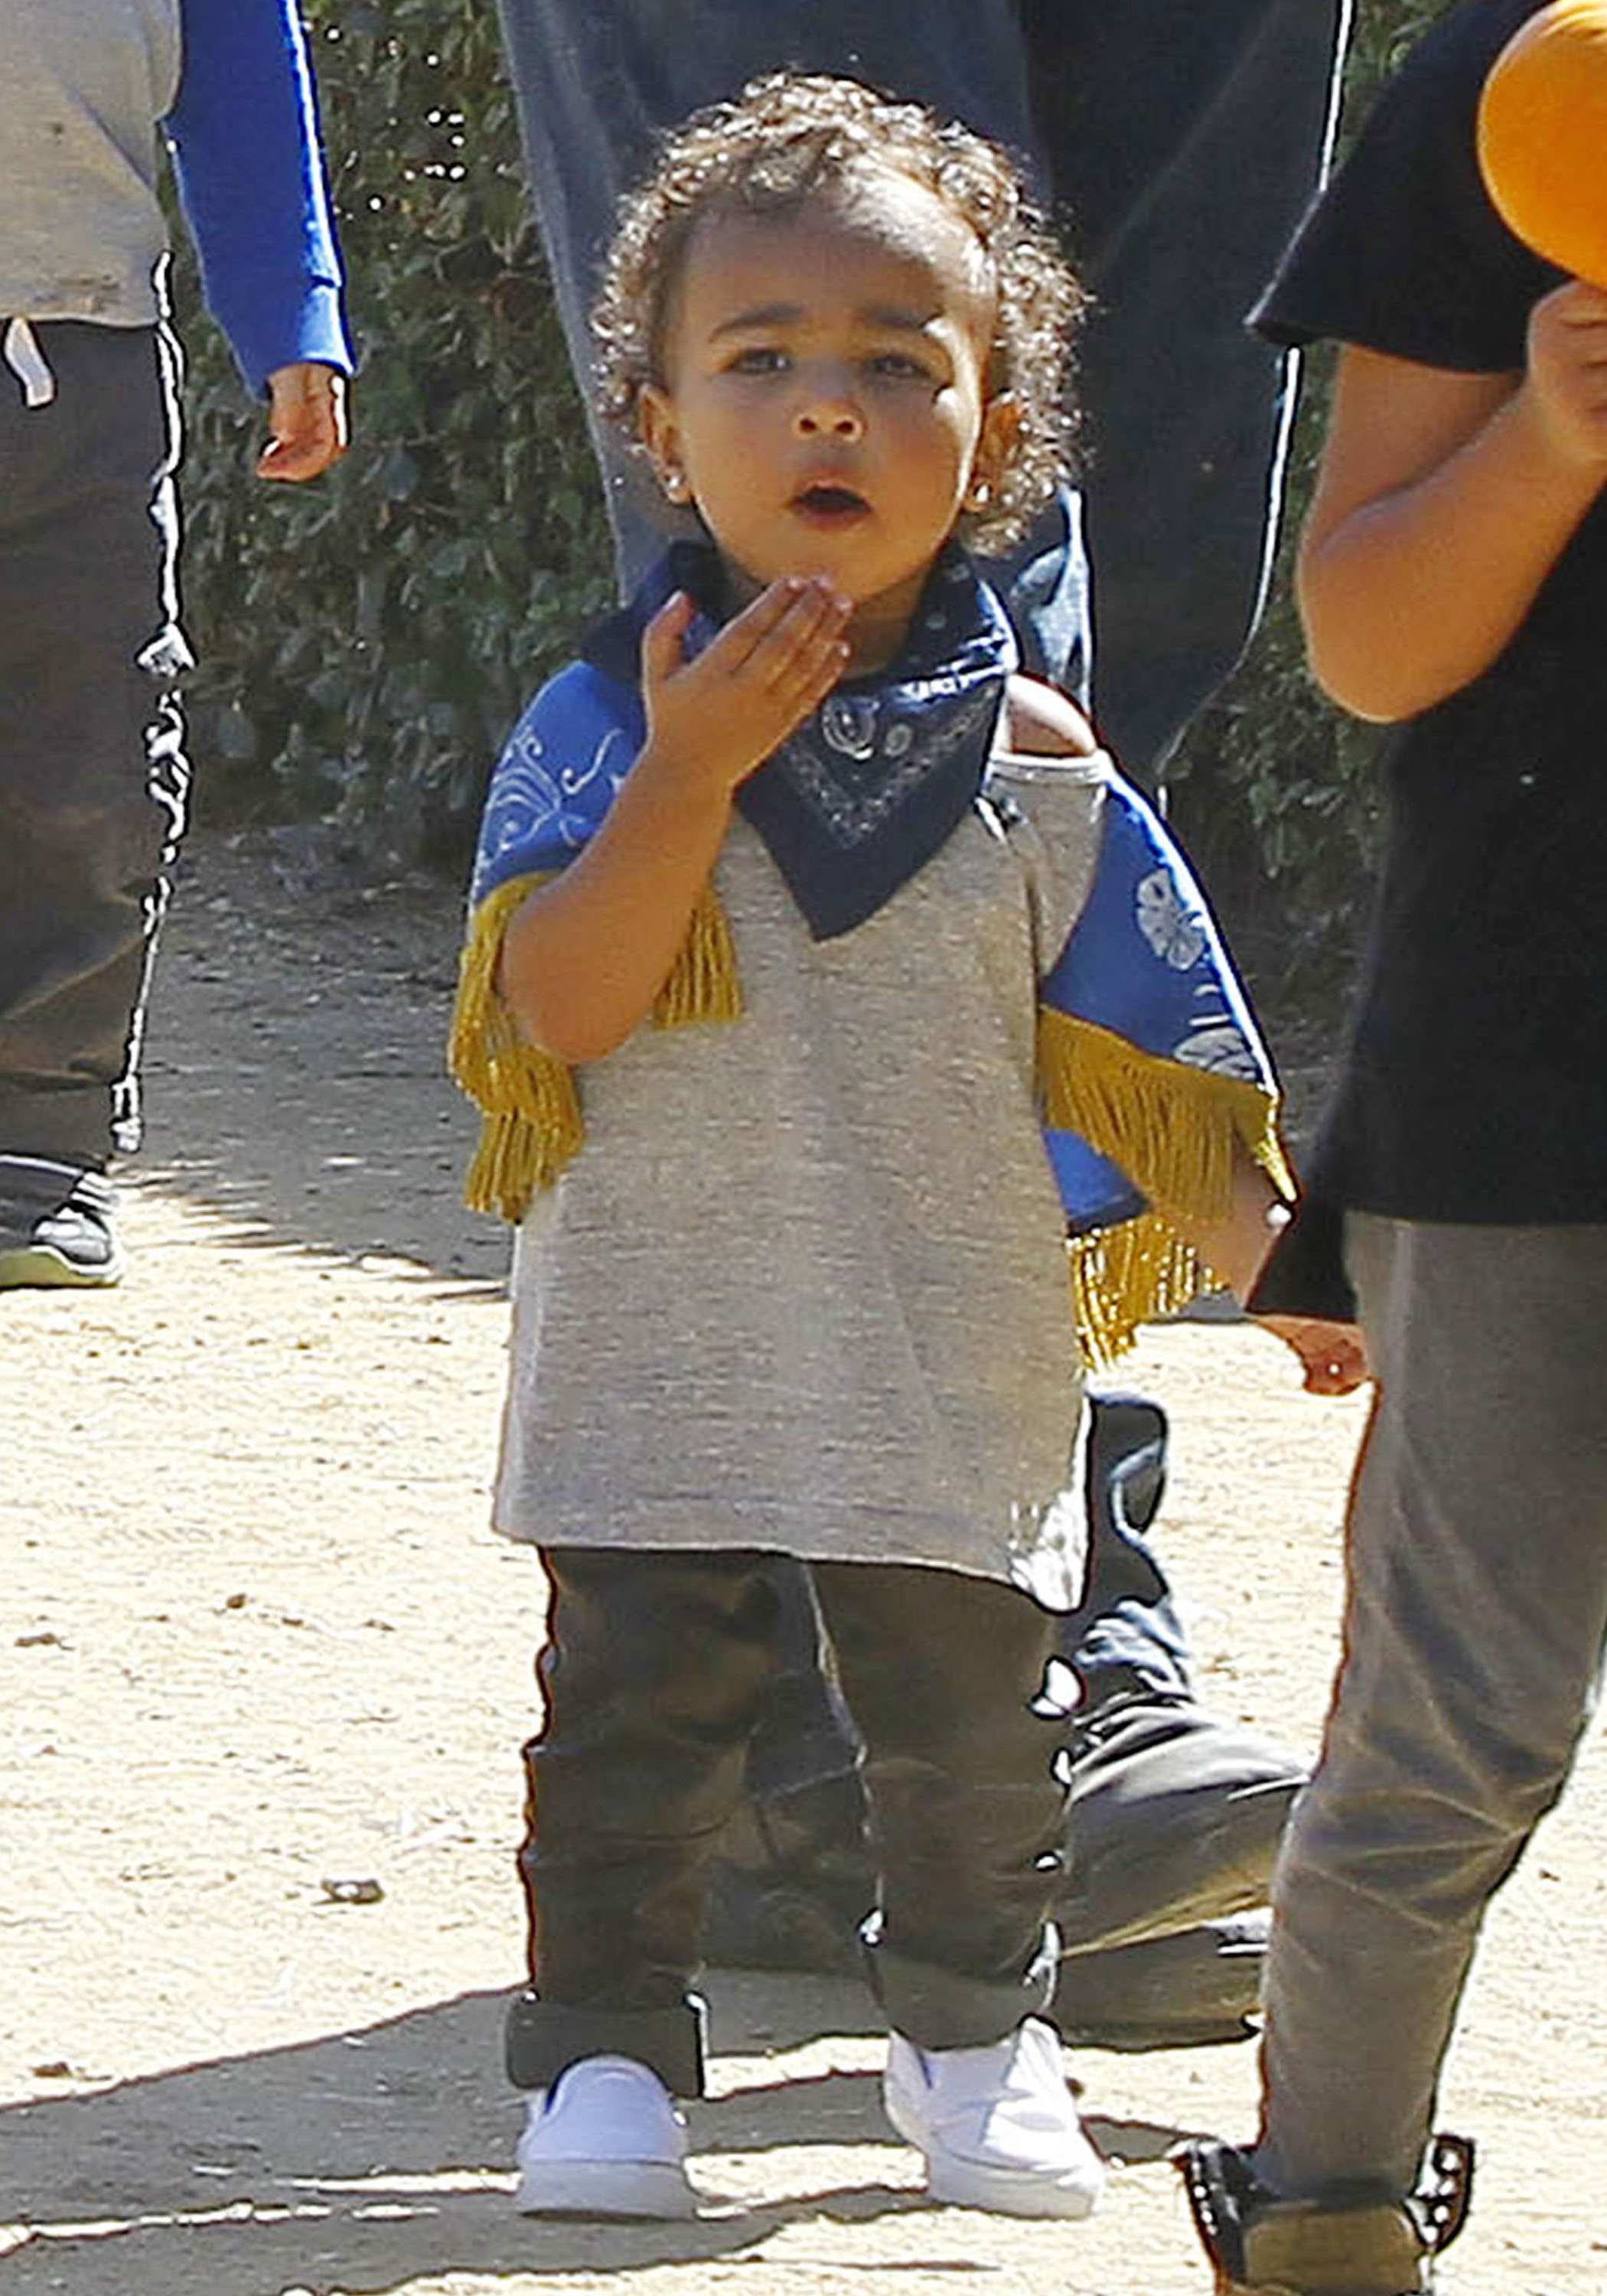 51561694 Kim Kardashian, her husband Kanye West, and their daughter North along with Kris Jenner, a pregnant Kourtney Kardashian, and her kids Mason and Penelope have a family day at Underwood Family Farms in Moorpark, California on October 18, 2014. FameFlynet, Inc - Beverly Hills, CA, USA - +1 (818) 307-4813